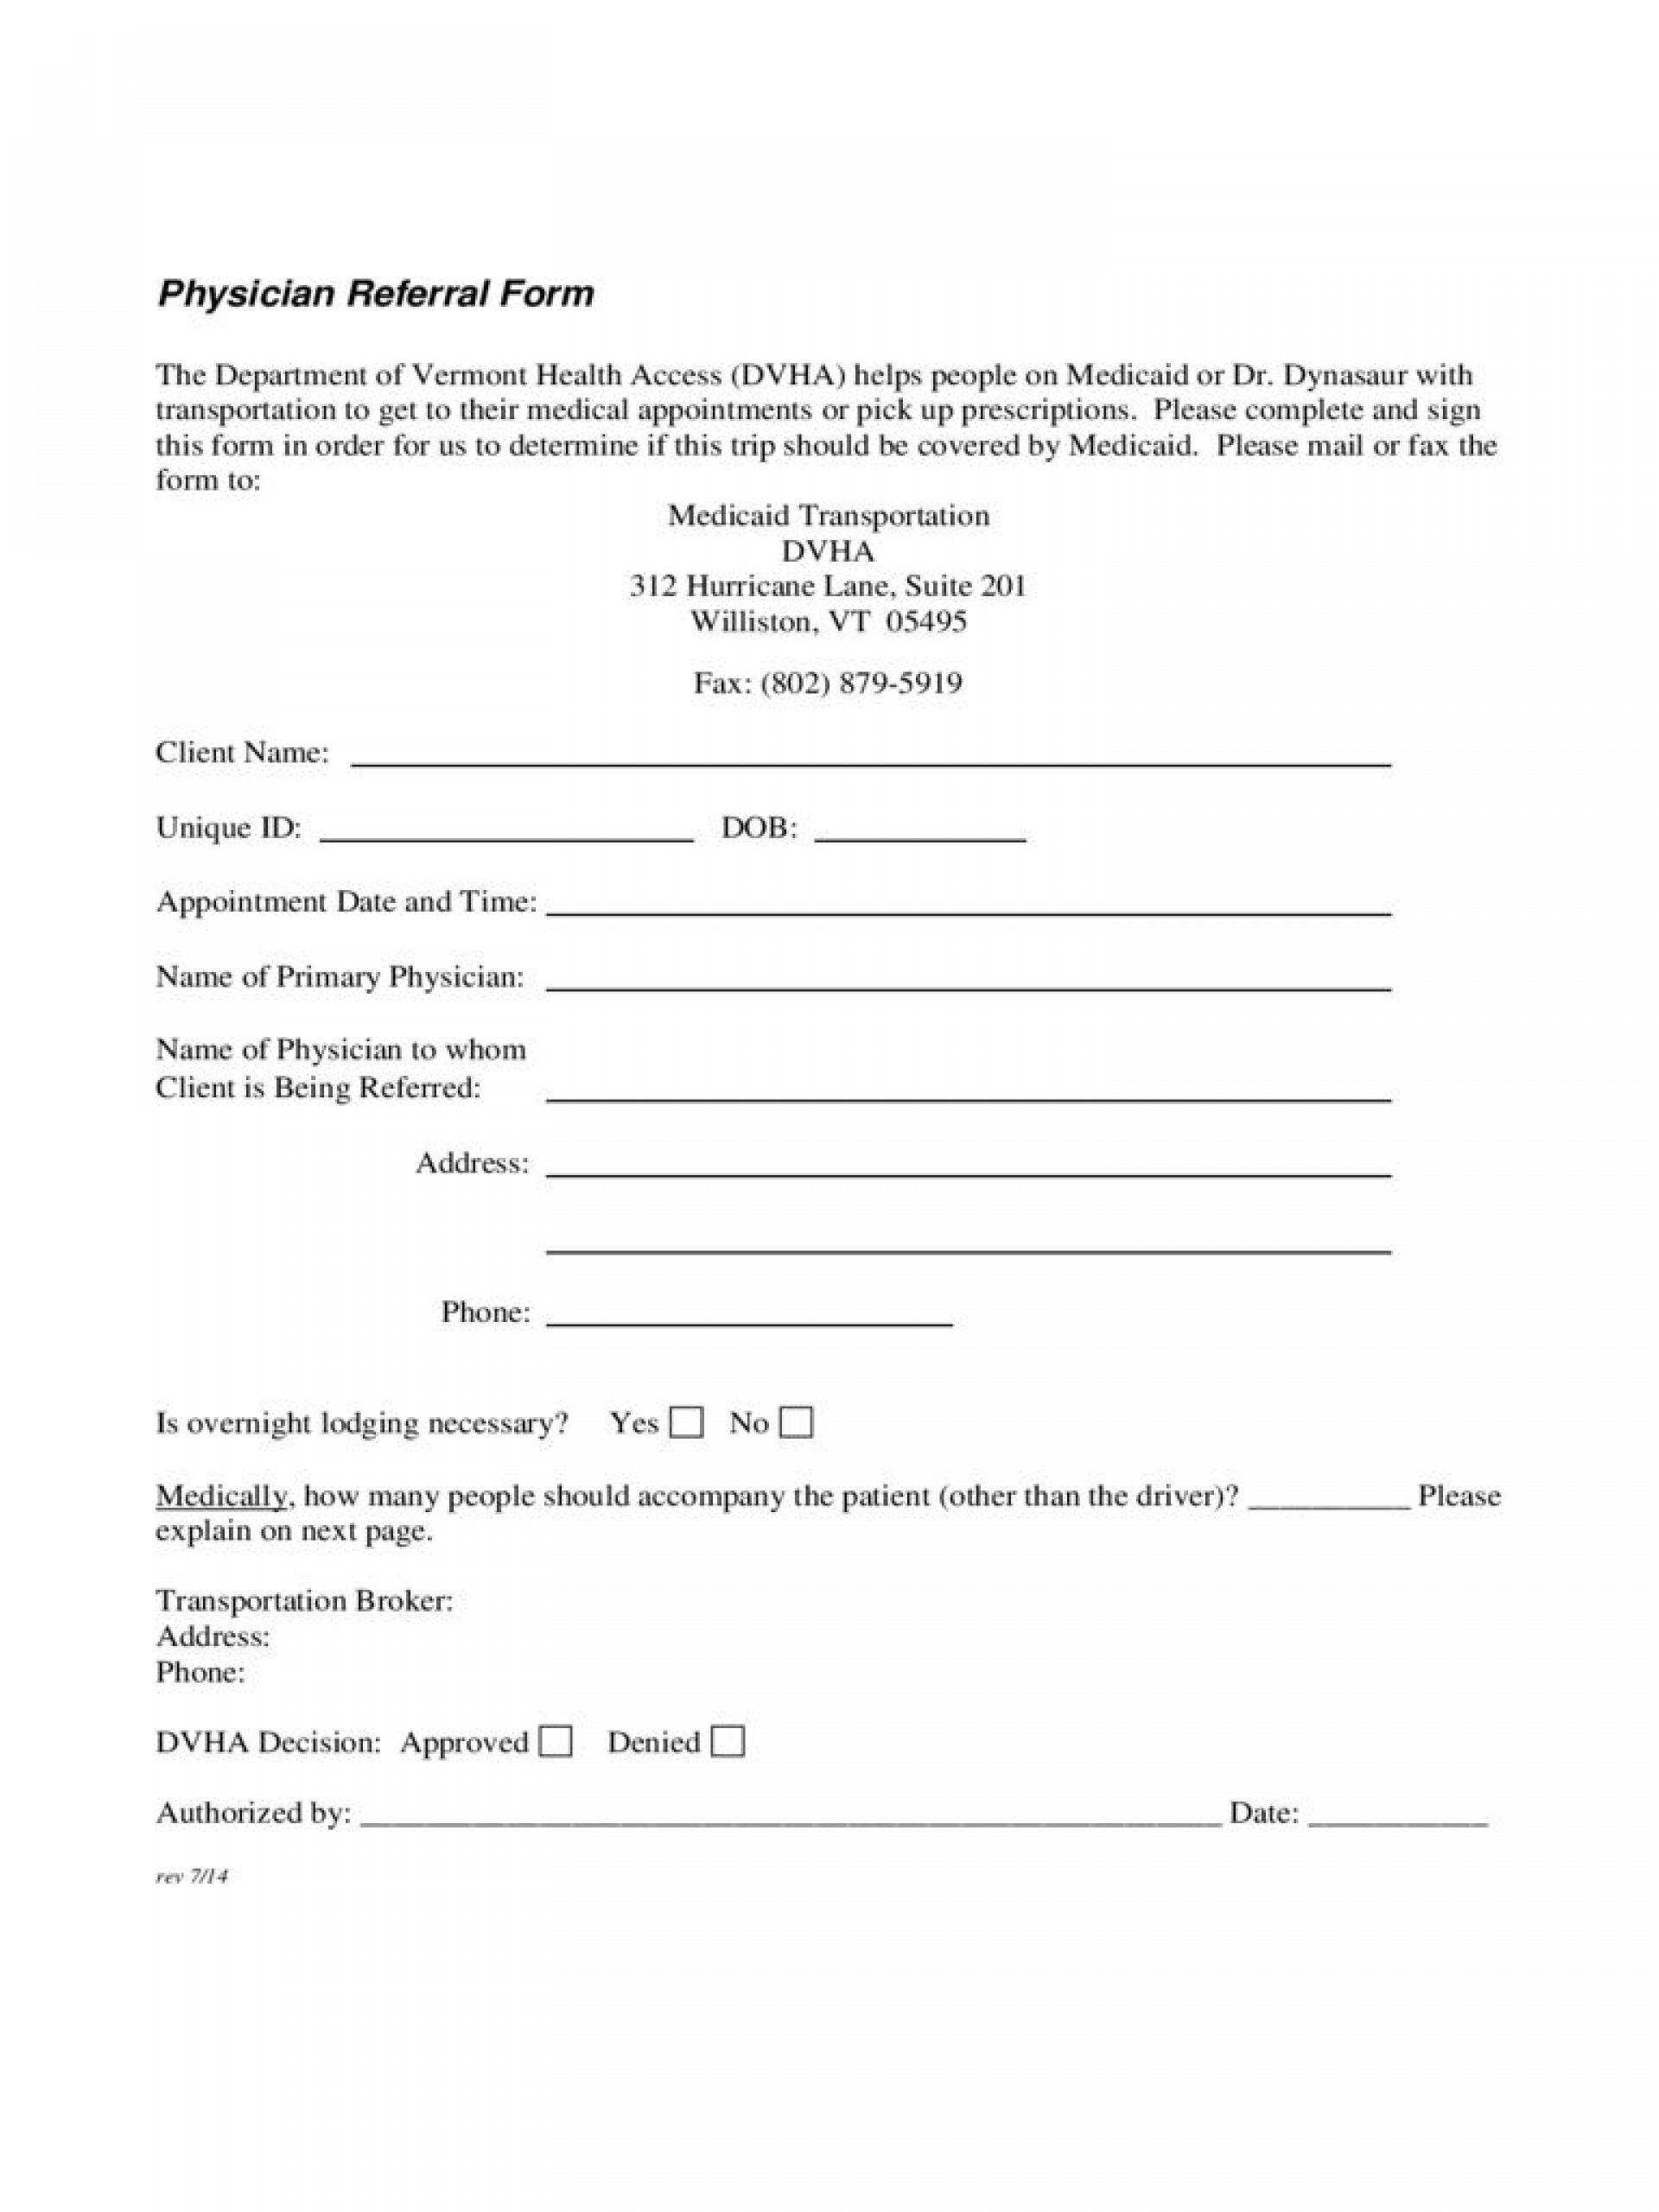 005 Imposing Medical Referral Form Template Highest Clarity  Dental Patient Doctor Free Physician1920